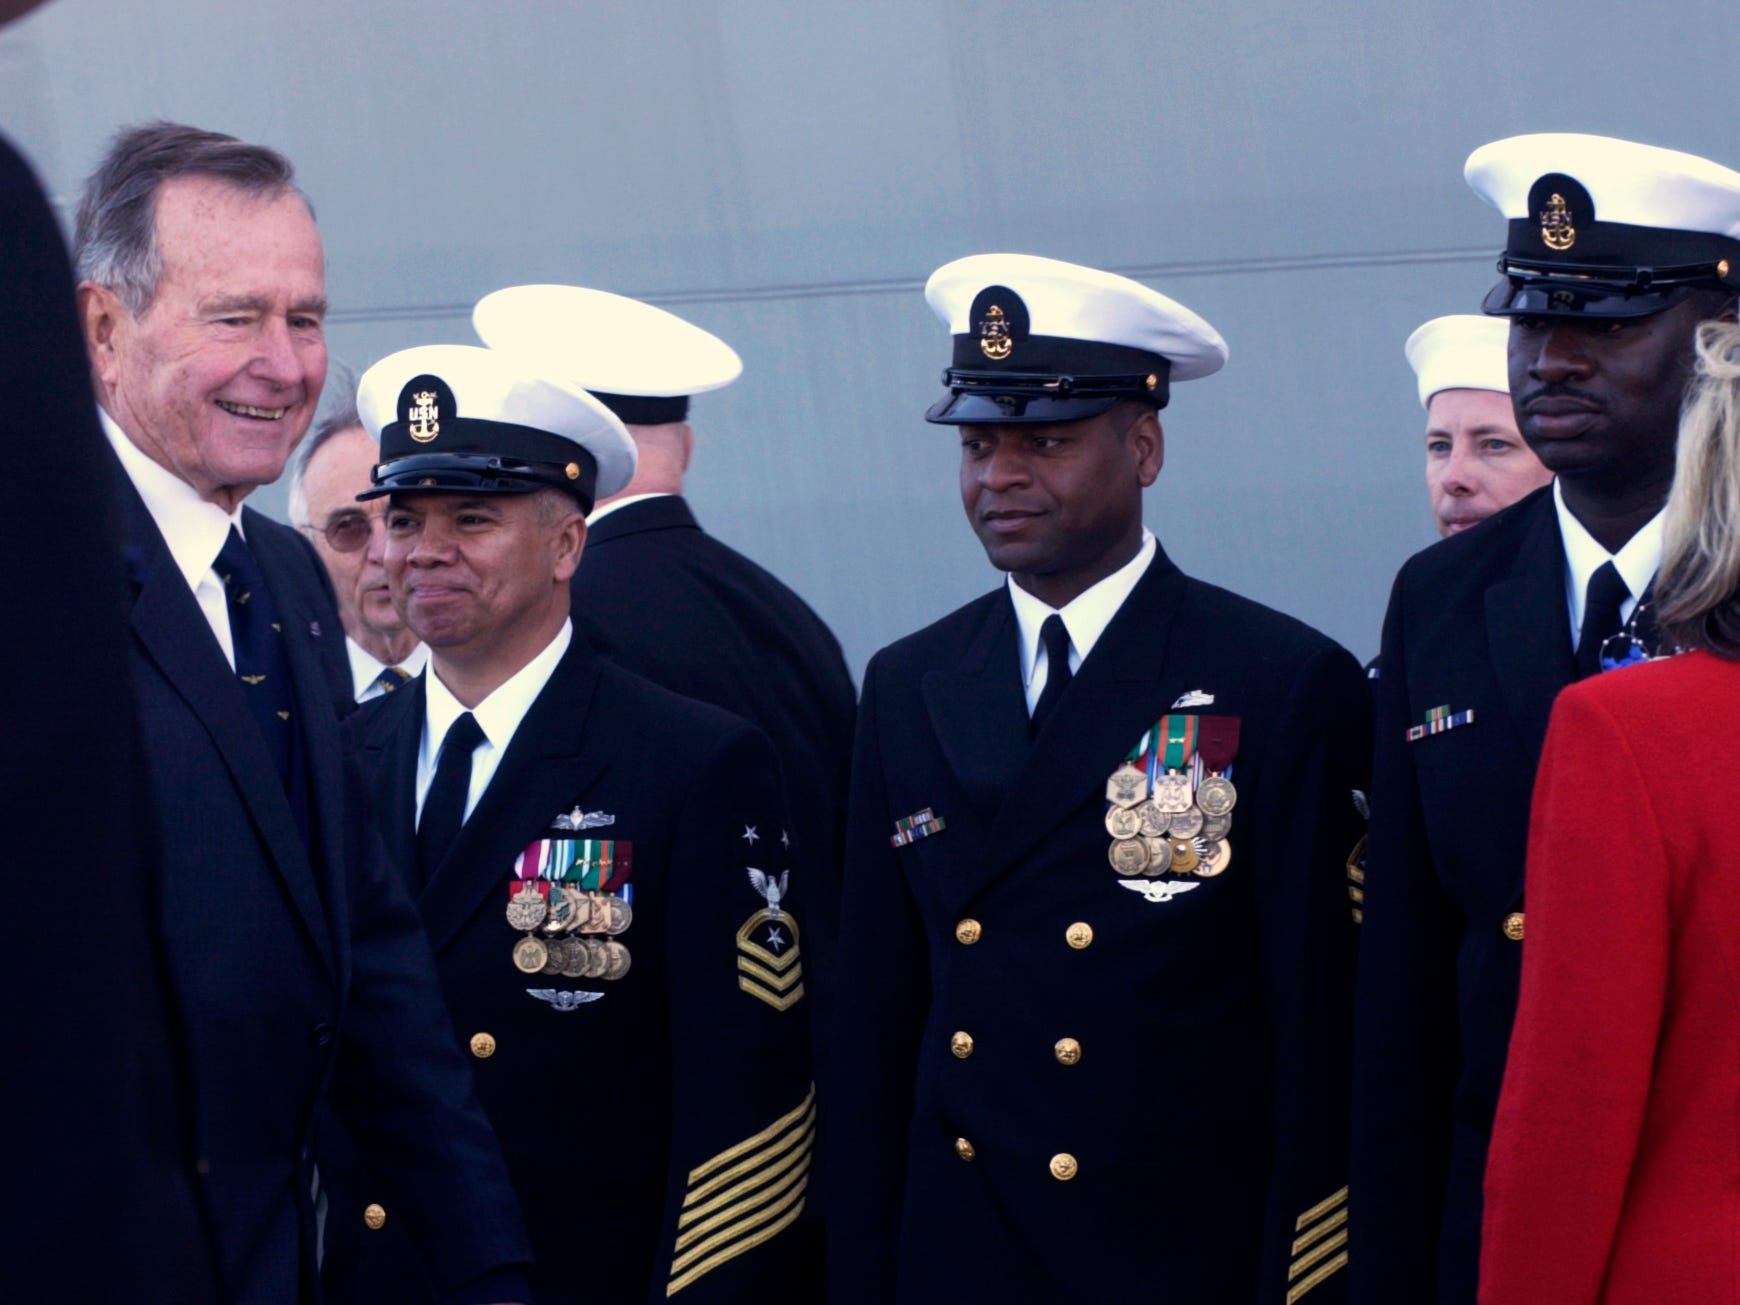 Former President George H.W. Bush (left) participated in the commissioning ceremony of the USS San Antonio at Naval Station Ingleside in January 2006. Former President Bush gave the principal address at the ceremony.